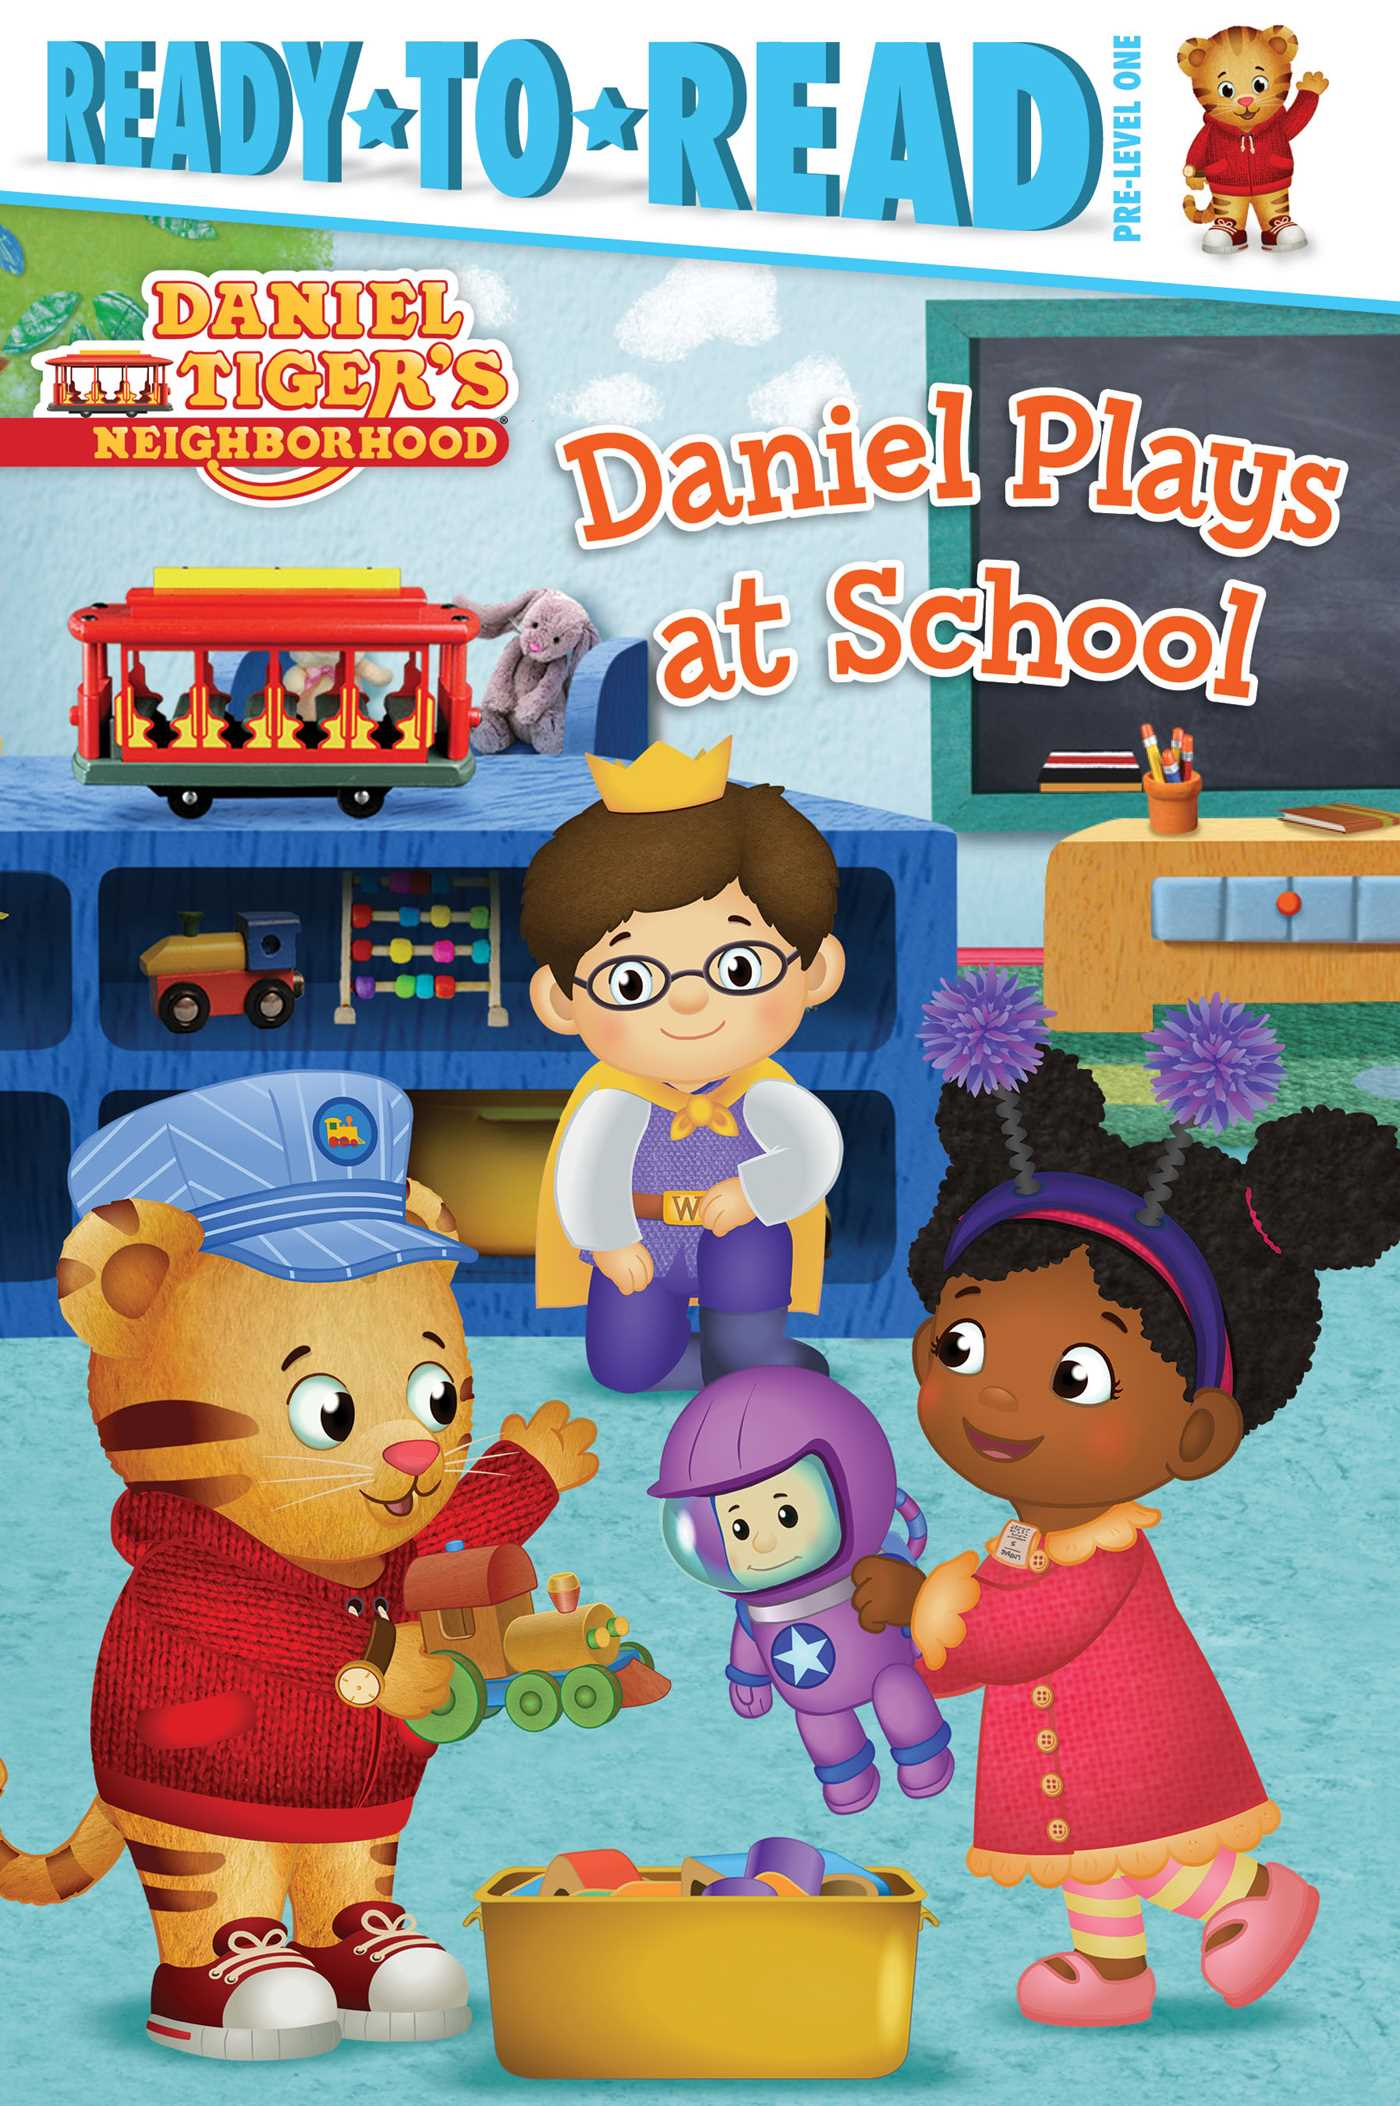 Daniel plays at school 9781481461023 hr